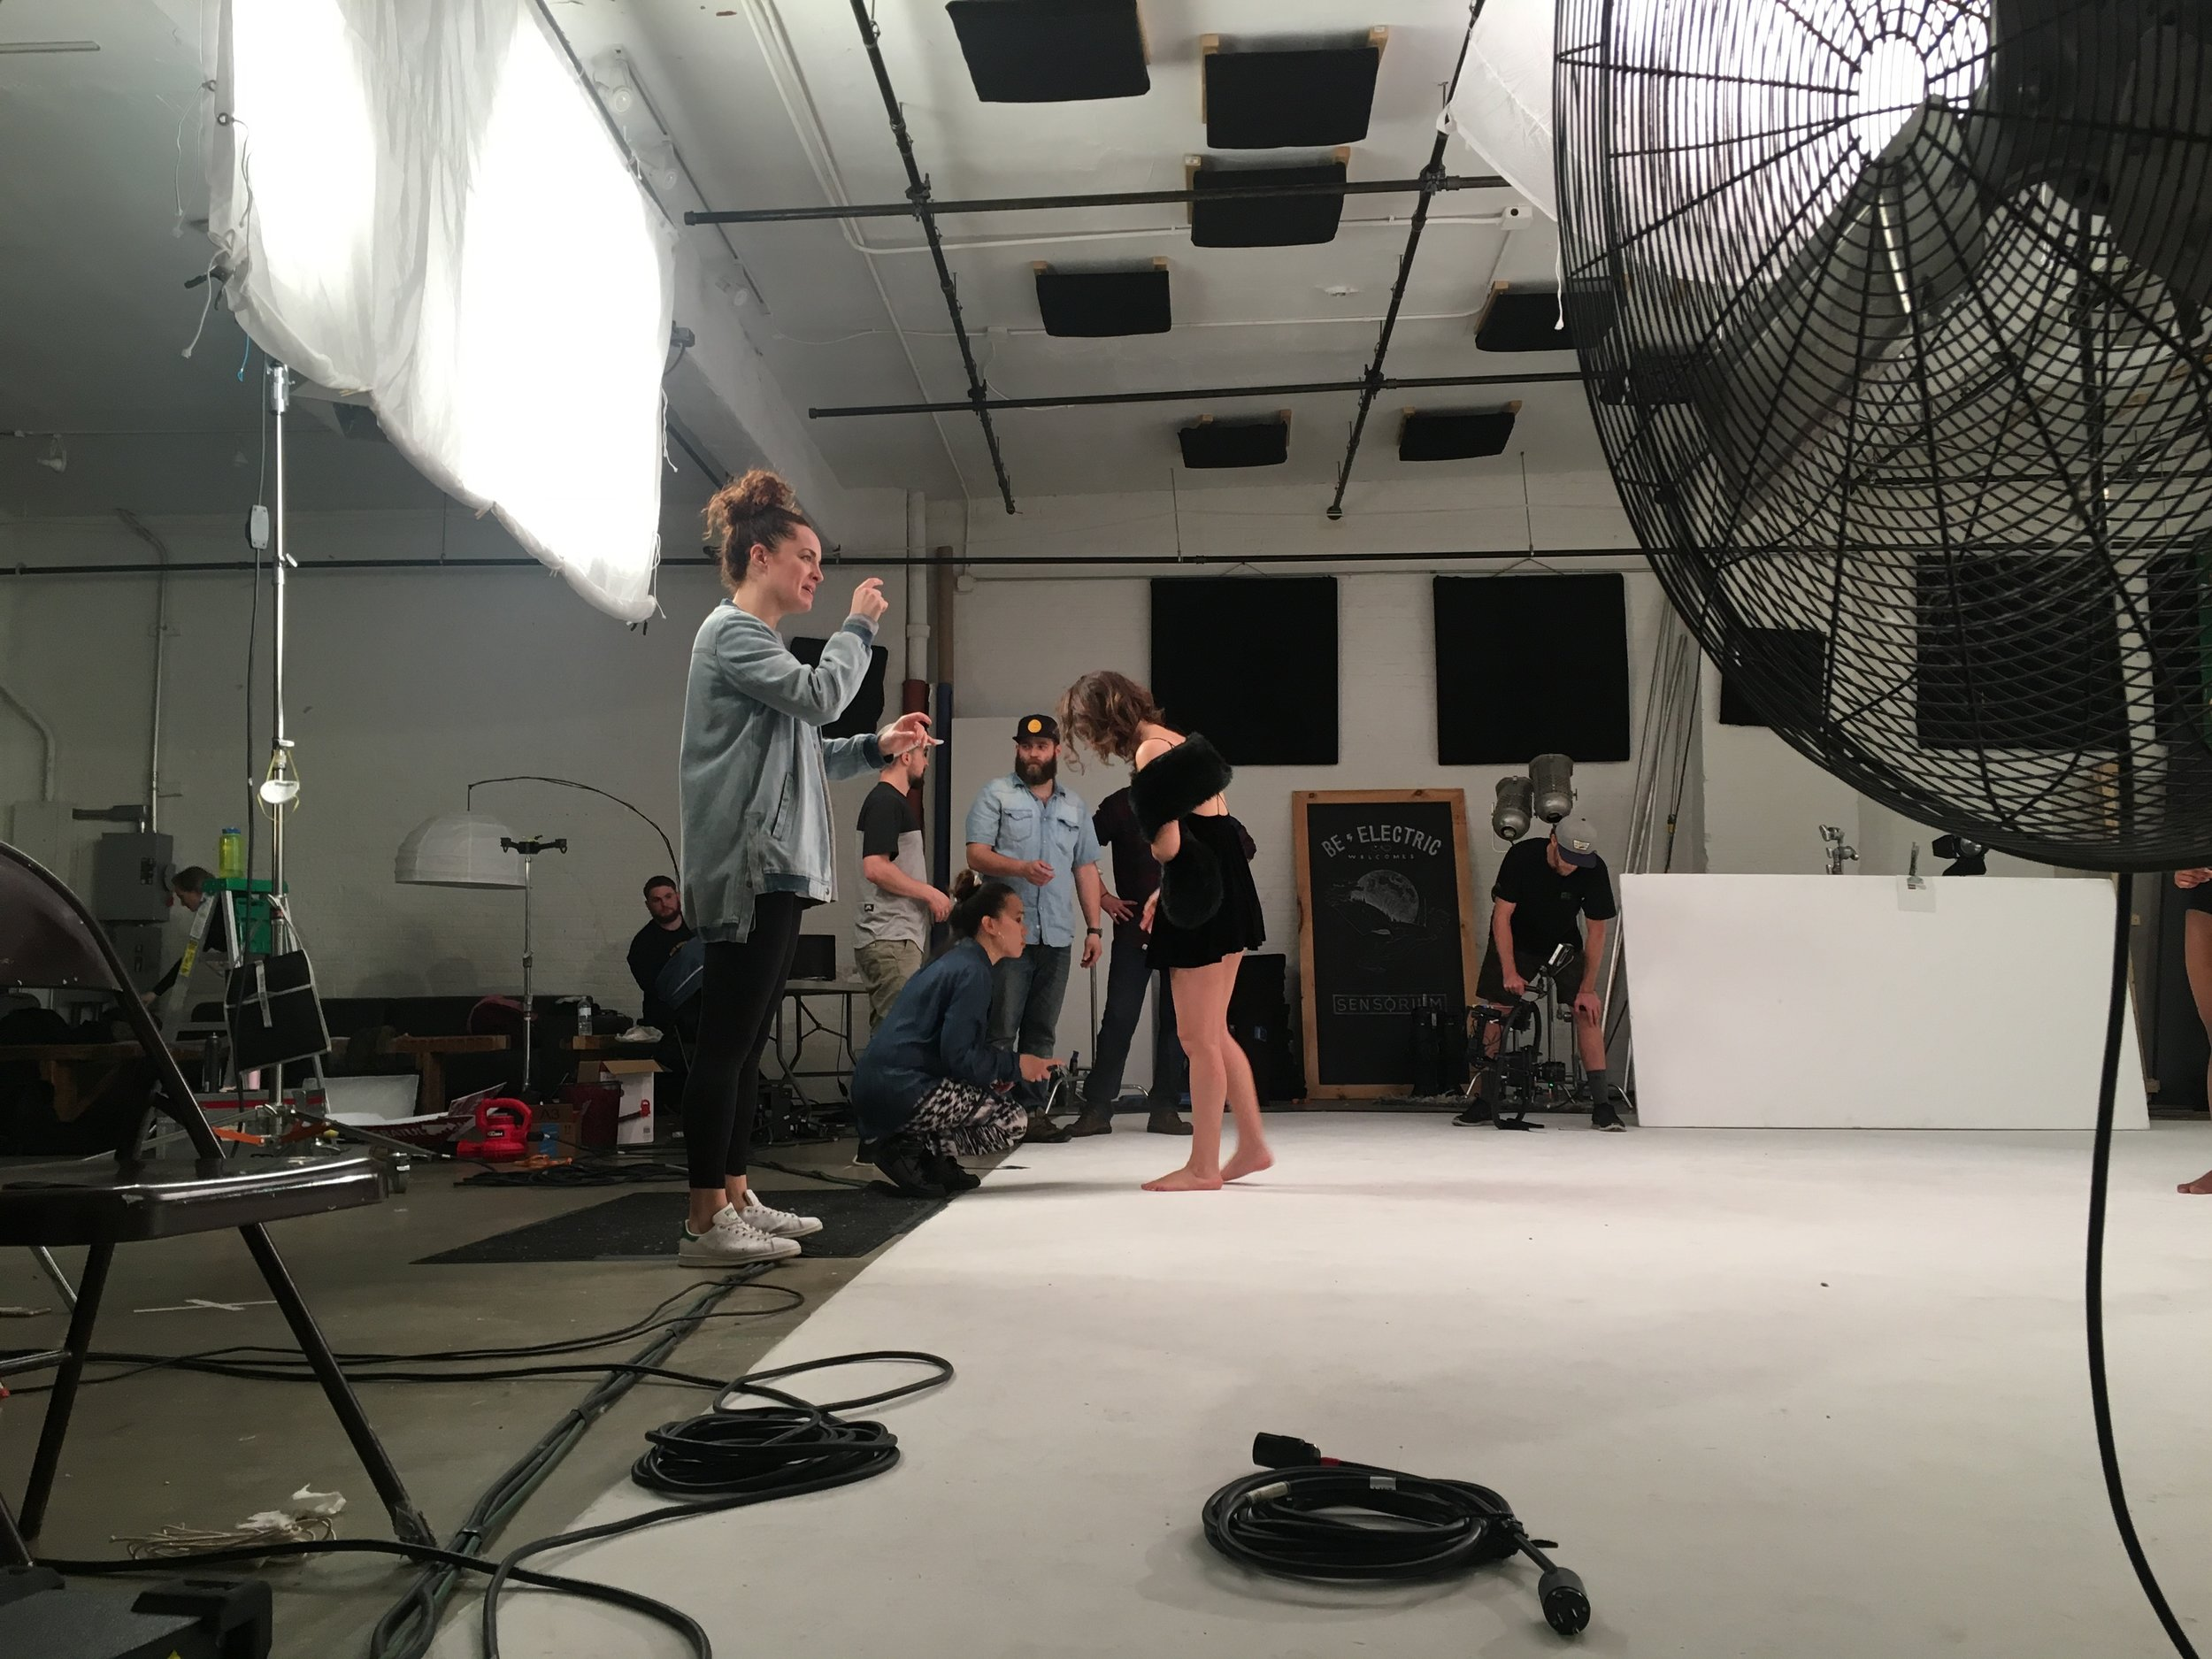 mikaella-ashley-musicvideo-nycproduction-arri.jpg